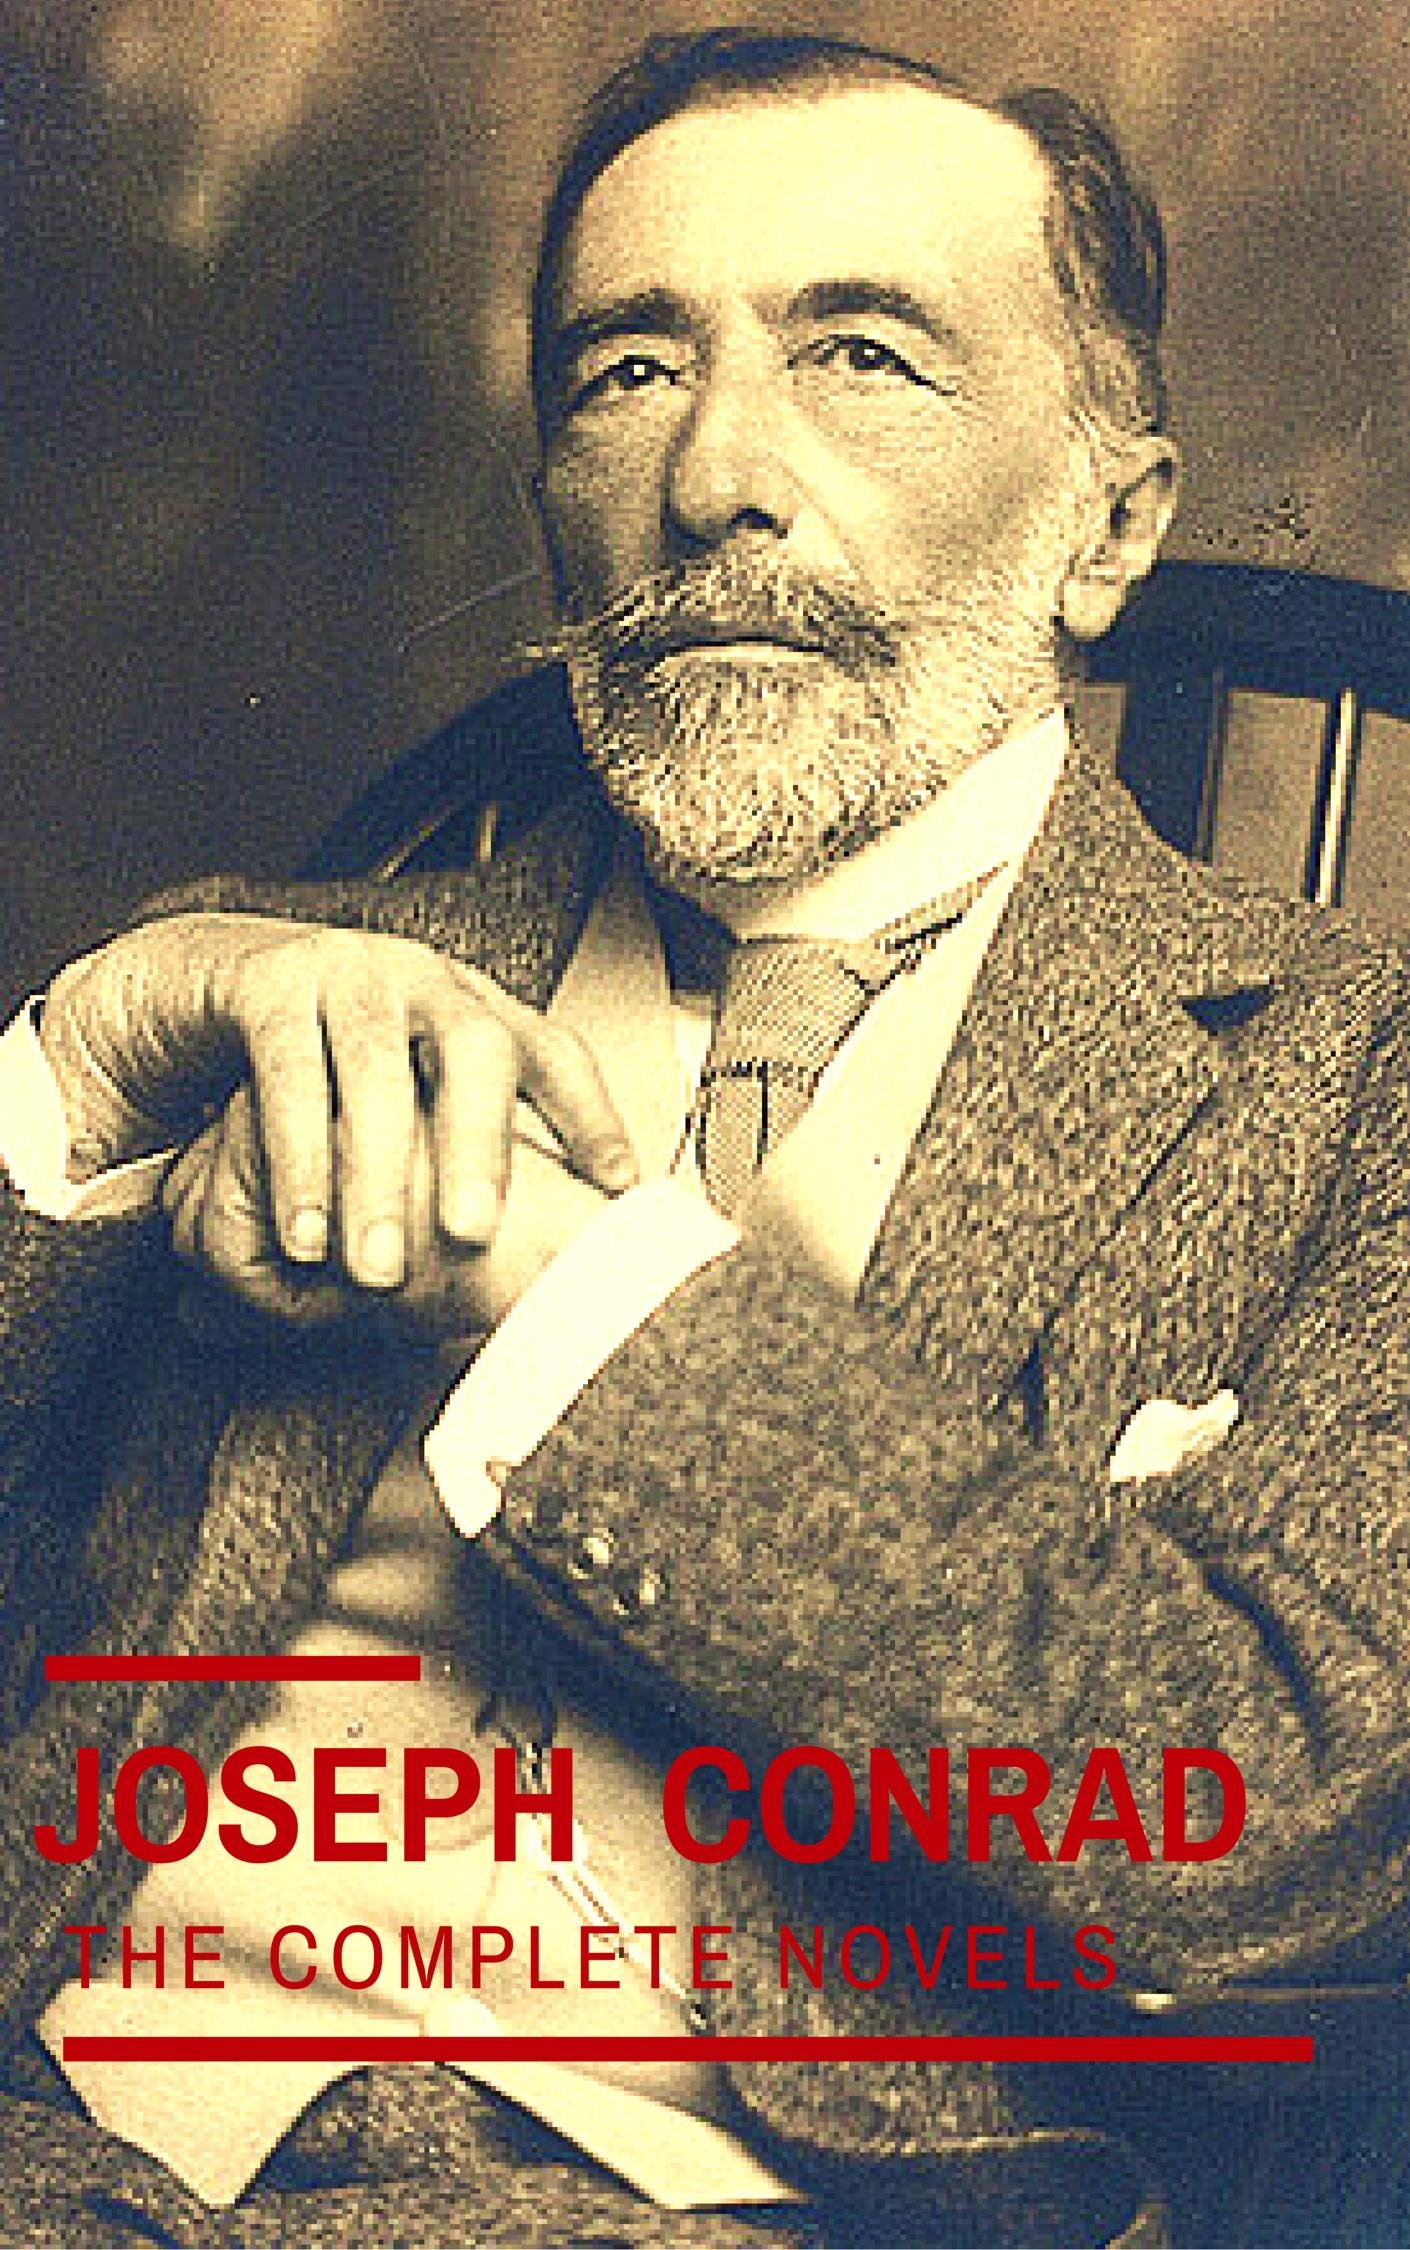 Joseph Conrad : The Complete Novels